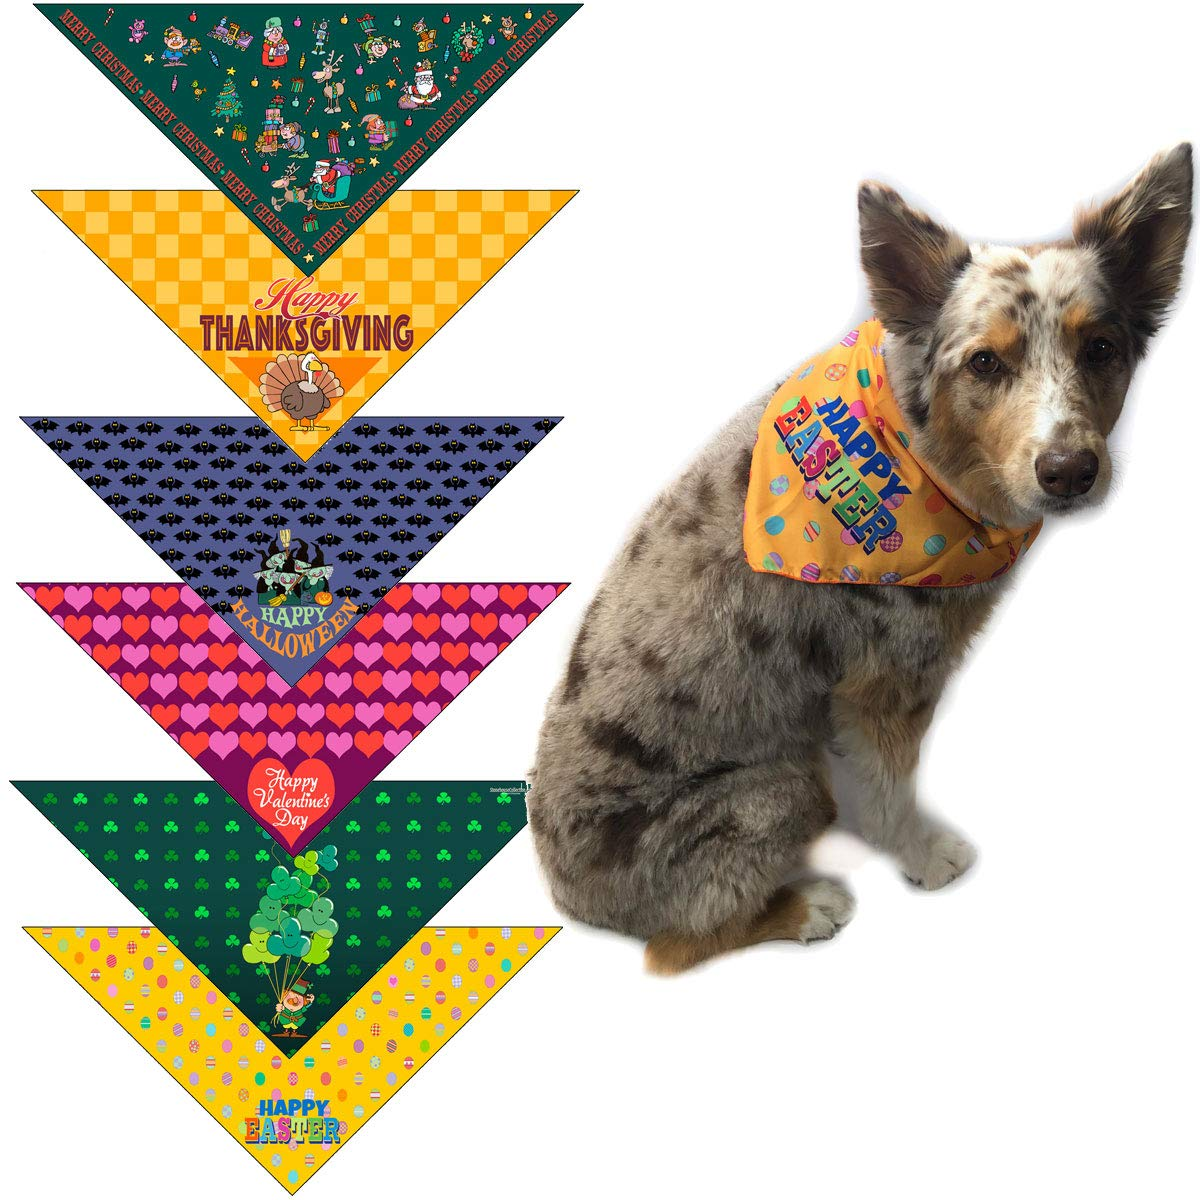 Stonehouse Collection Holiday Dog Bandana Med to Large Dogs - Set of 6 - Christmas, Halloween, Thanksgiving, Valentine's Day, St. Patricks Day, Easter - #2 (Med-Large)